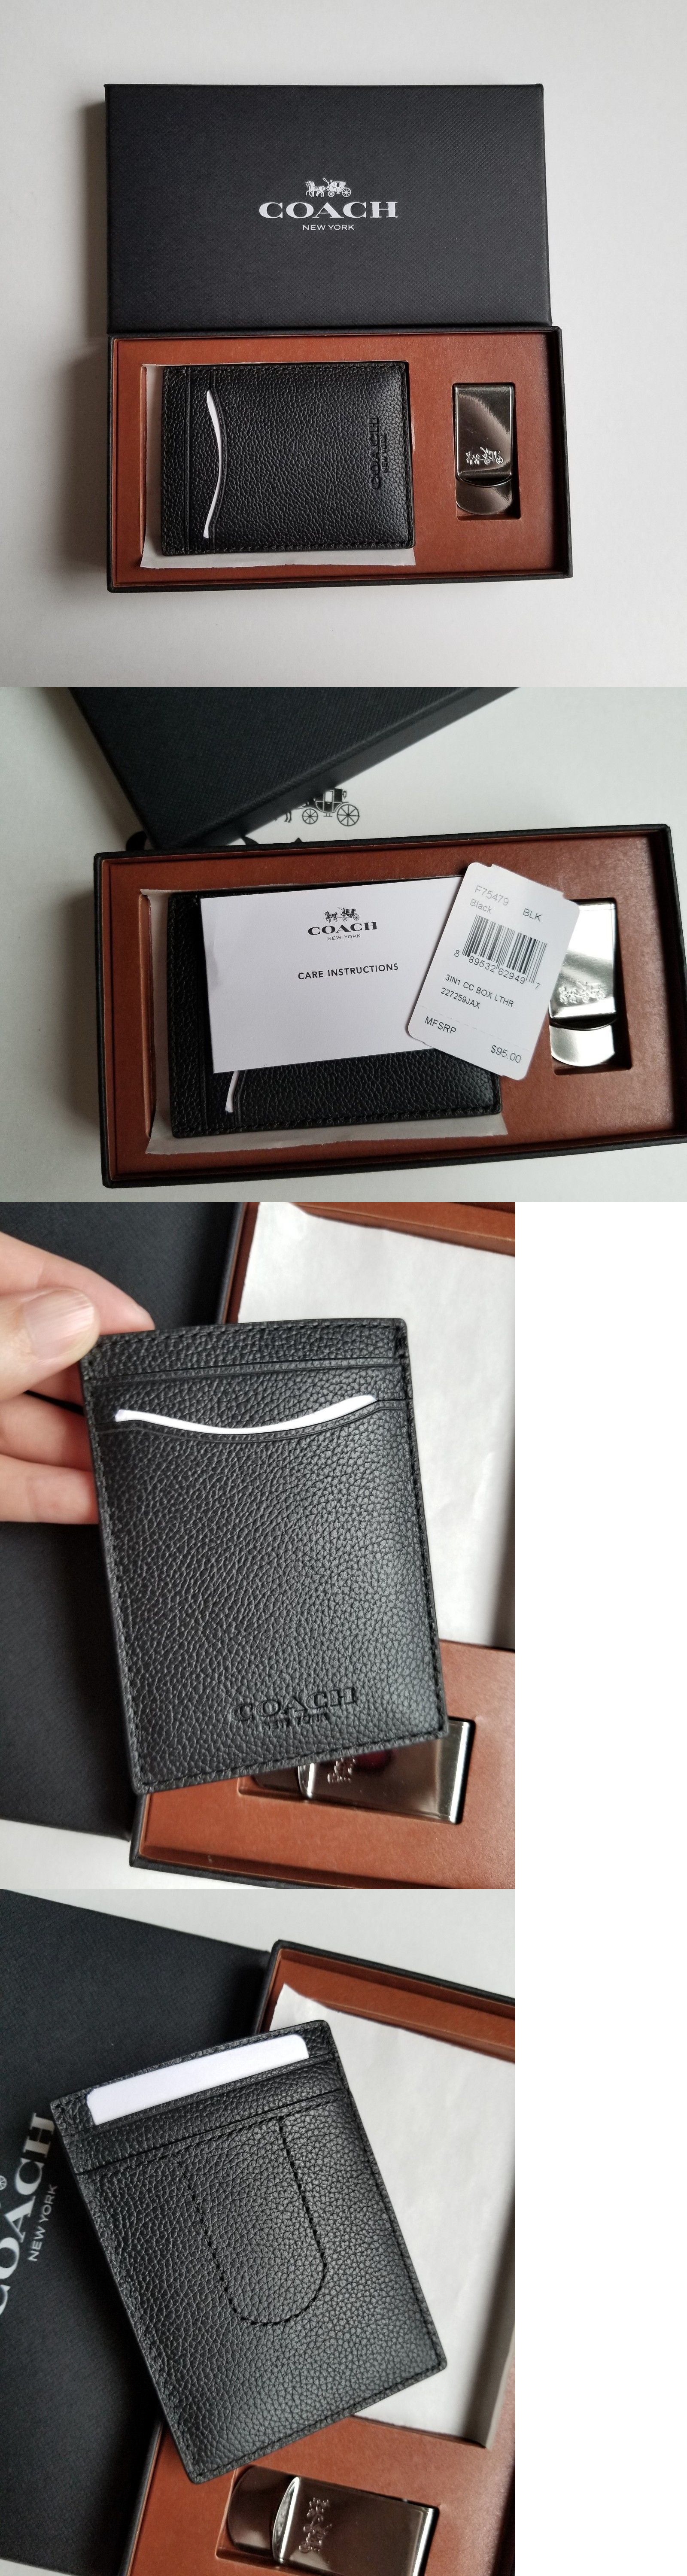 Business and credit card cases 105860 nwt coach men s 3 in1 leather business and credit card cases 105860 nwt coach men s 3 in1 leather card case reheart Image collections